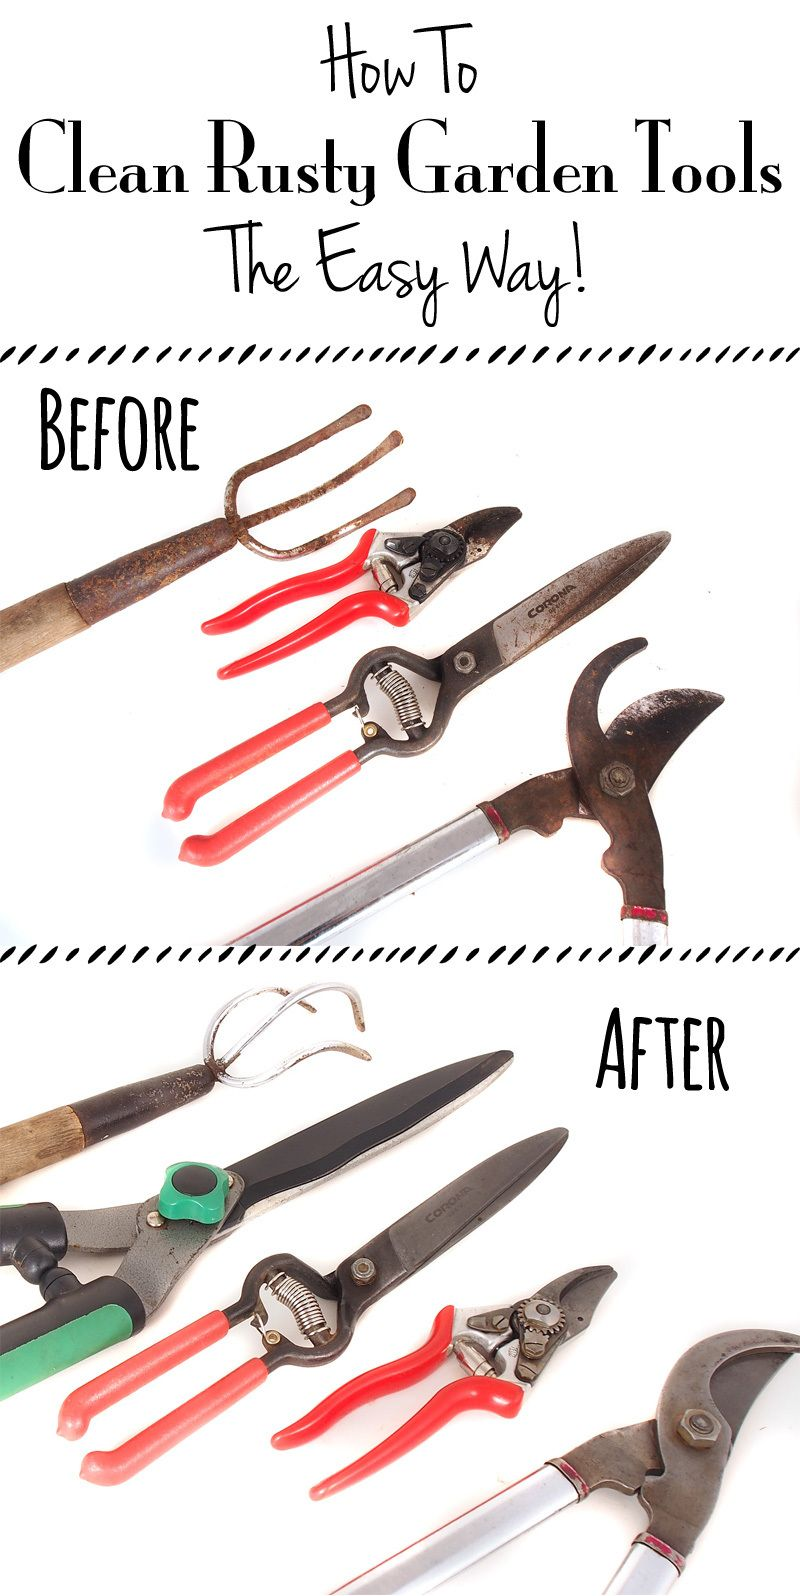 Garden How To Clean Rusty Tools